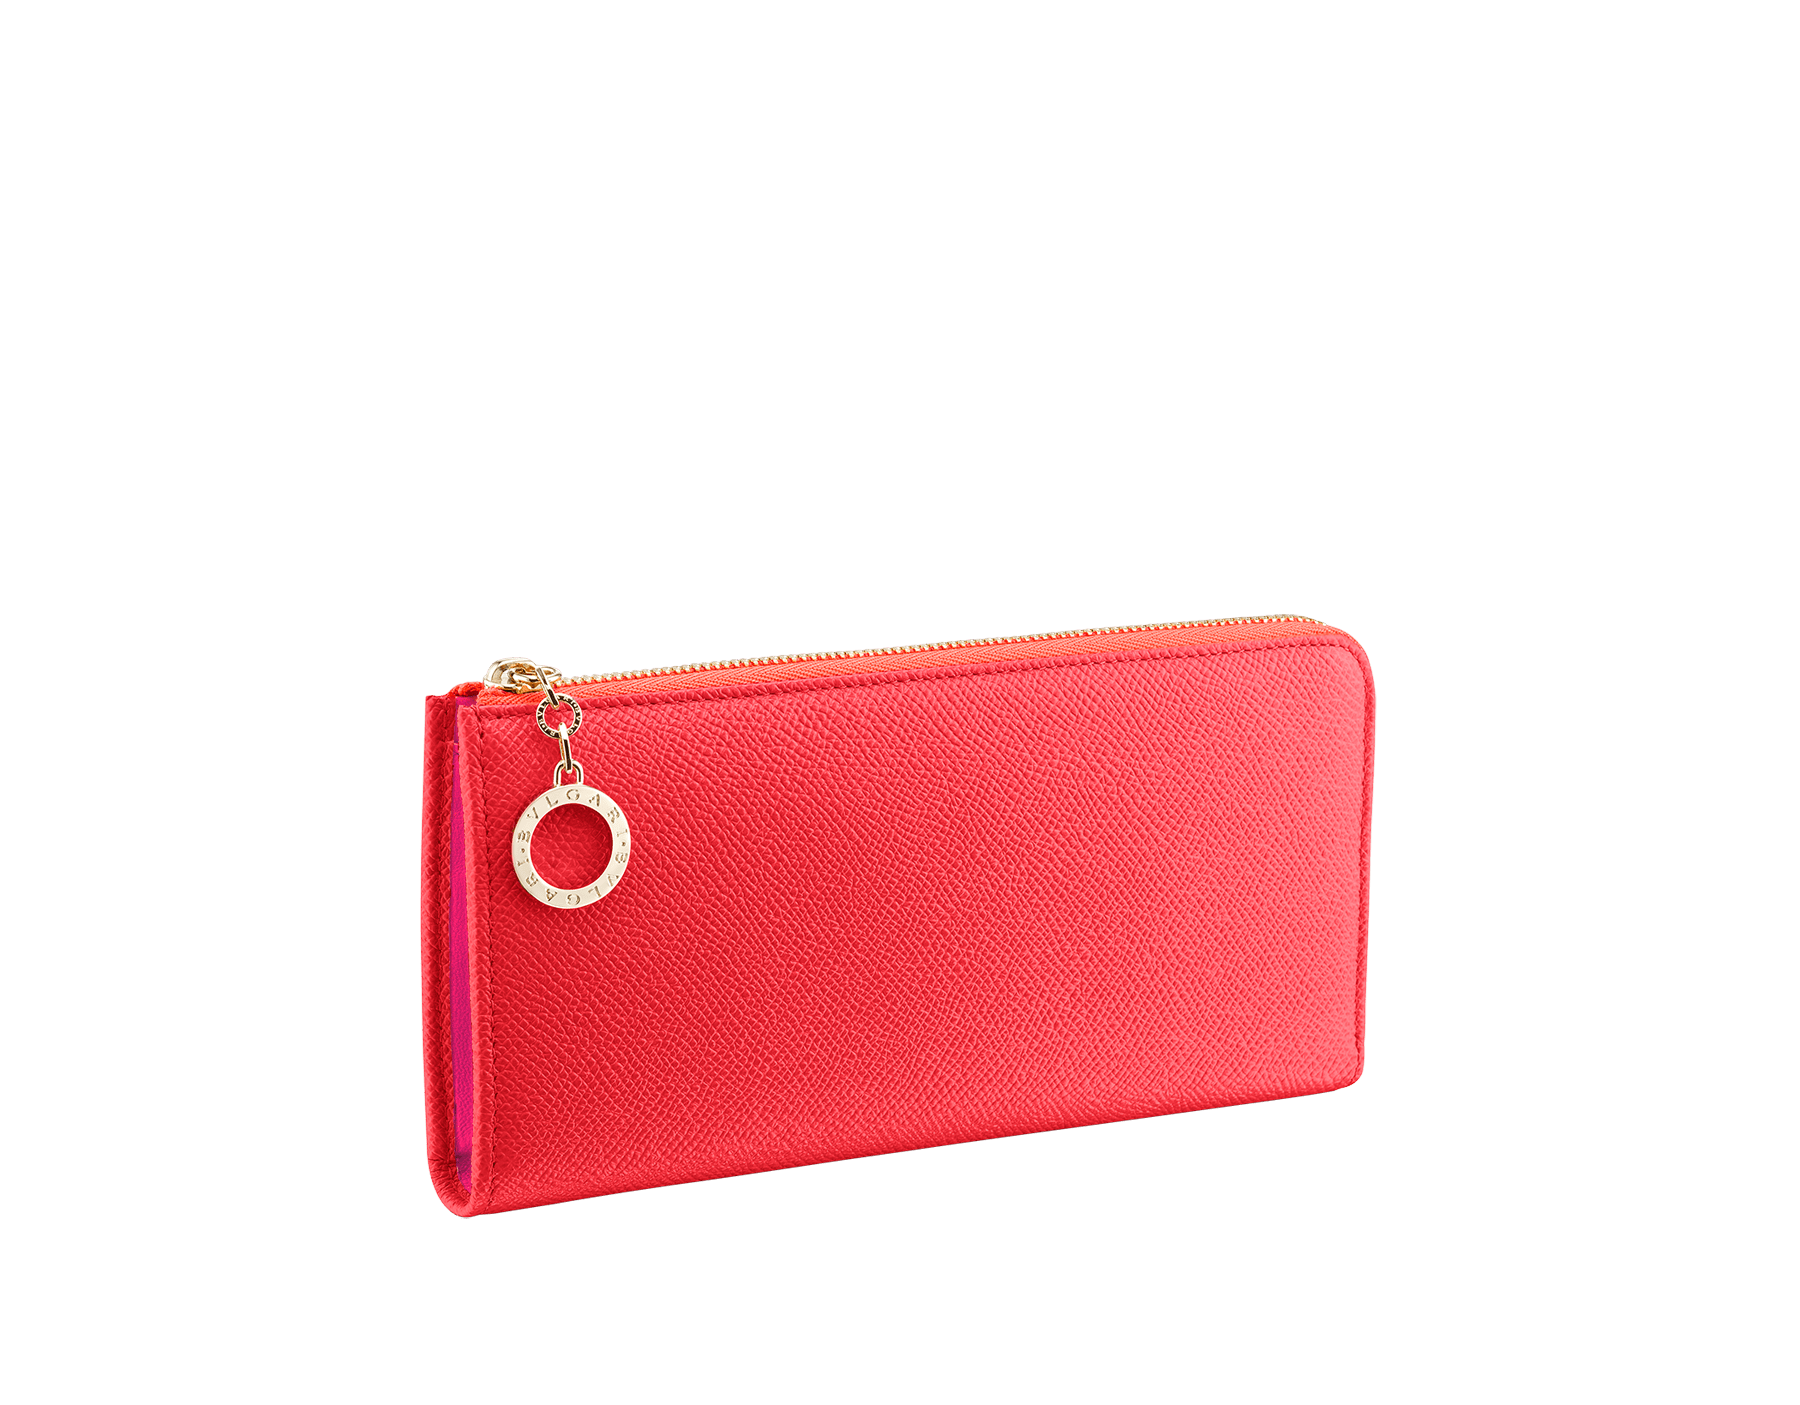 BVLGARI BVLGARI L-shaped zipped wallet in sea star coral bright grain calf leather and pink spinel nappa. Iconic logo zip puller in light gold plated brass. 288172 image 1